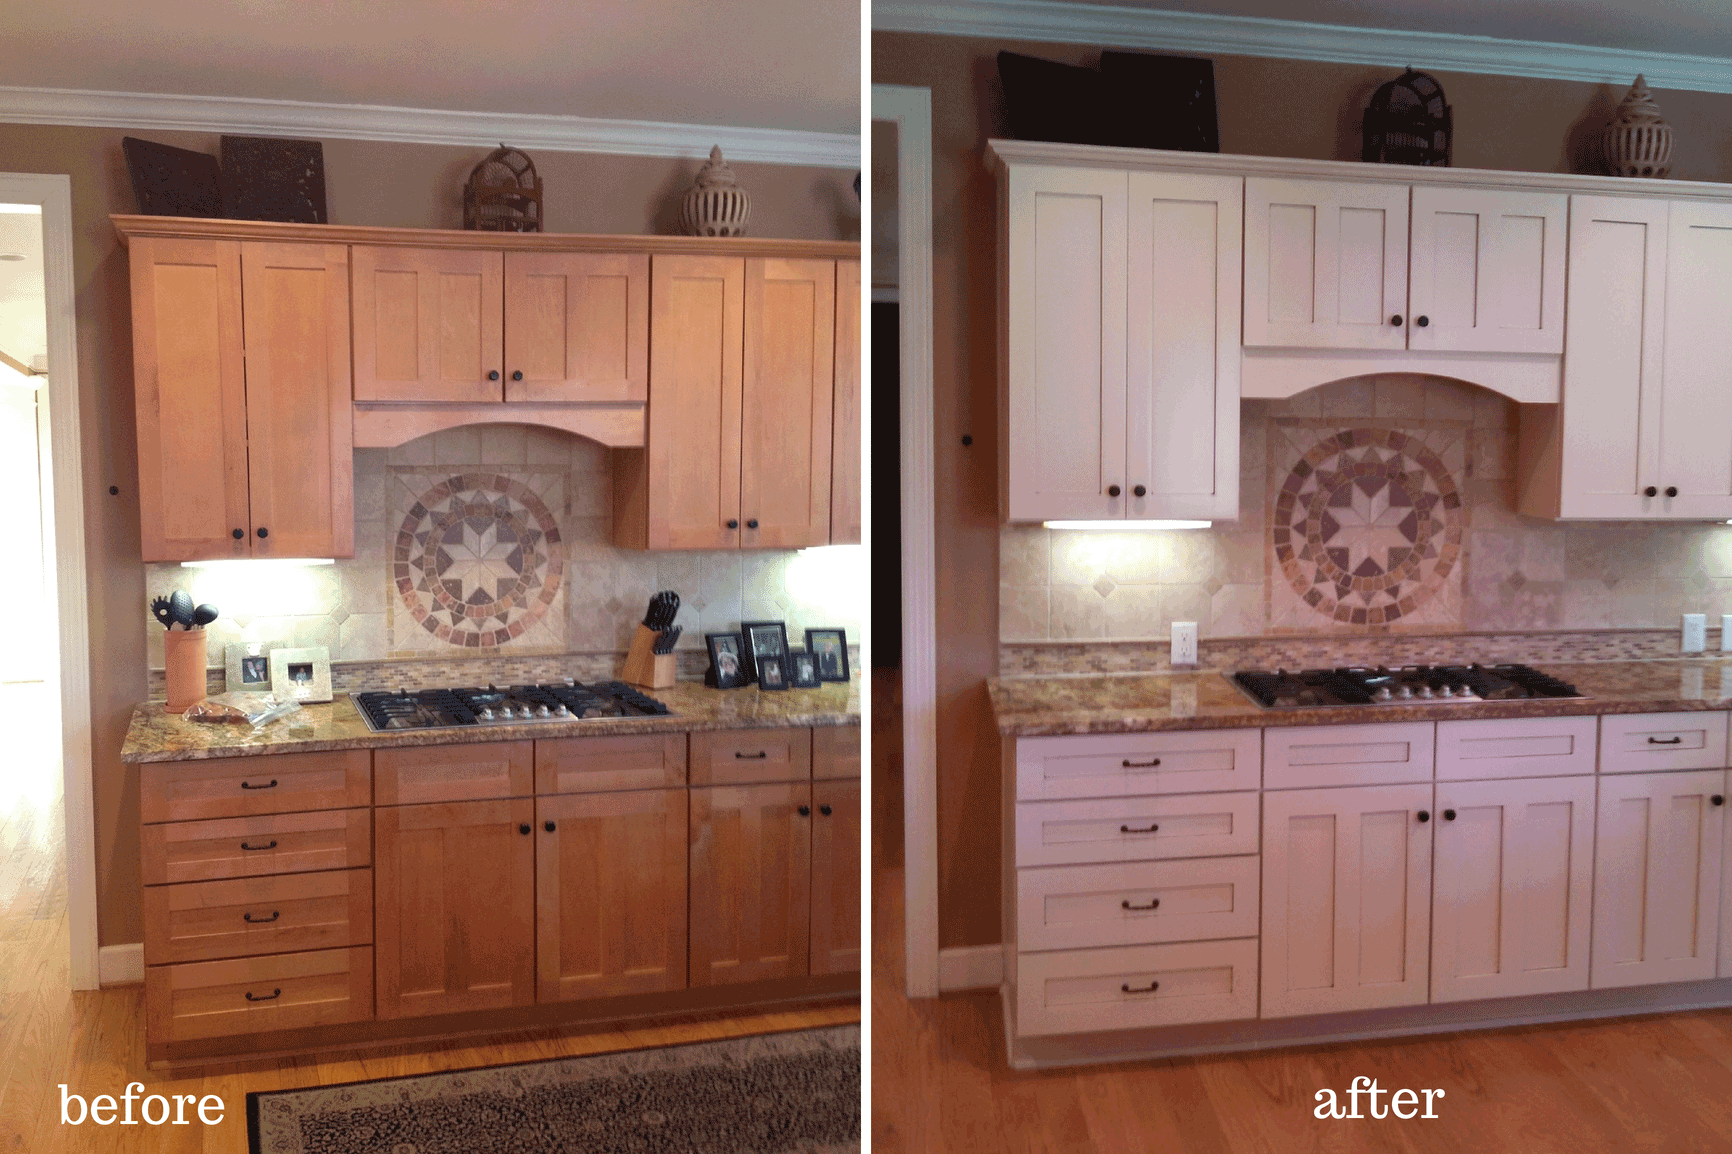 repainting kitchen cabinets before and after painted cabinets nashville tn before and after photos 25393